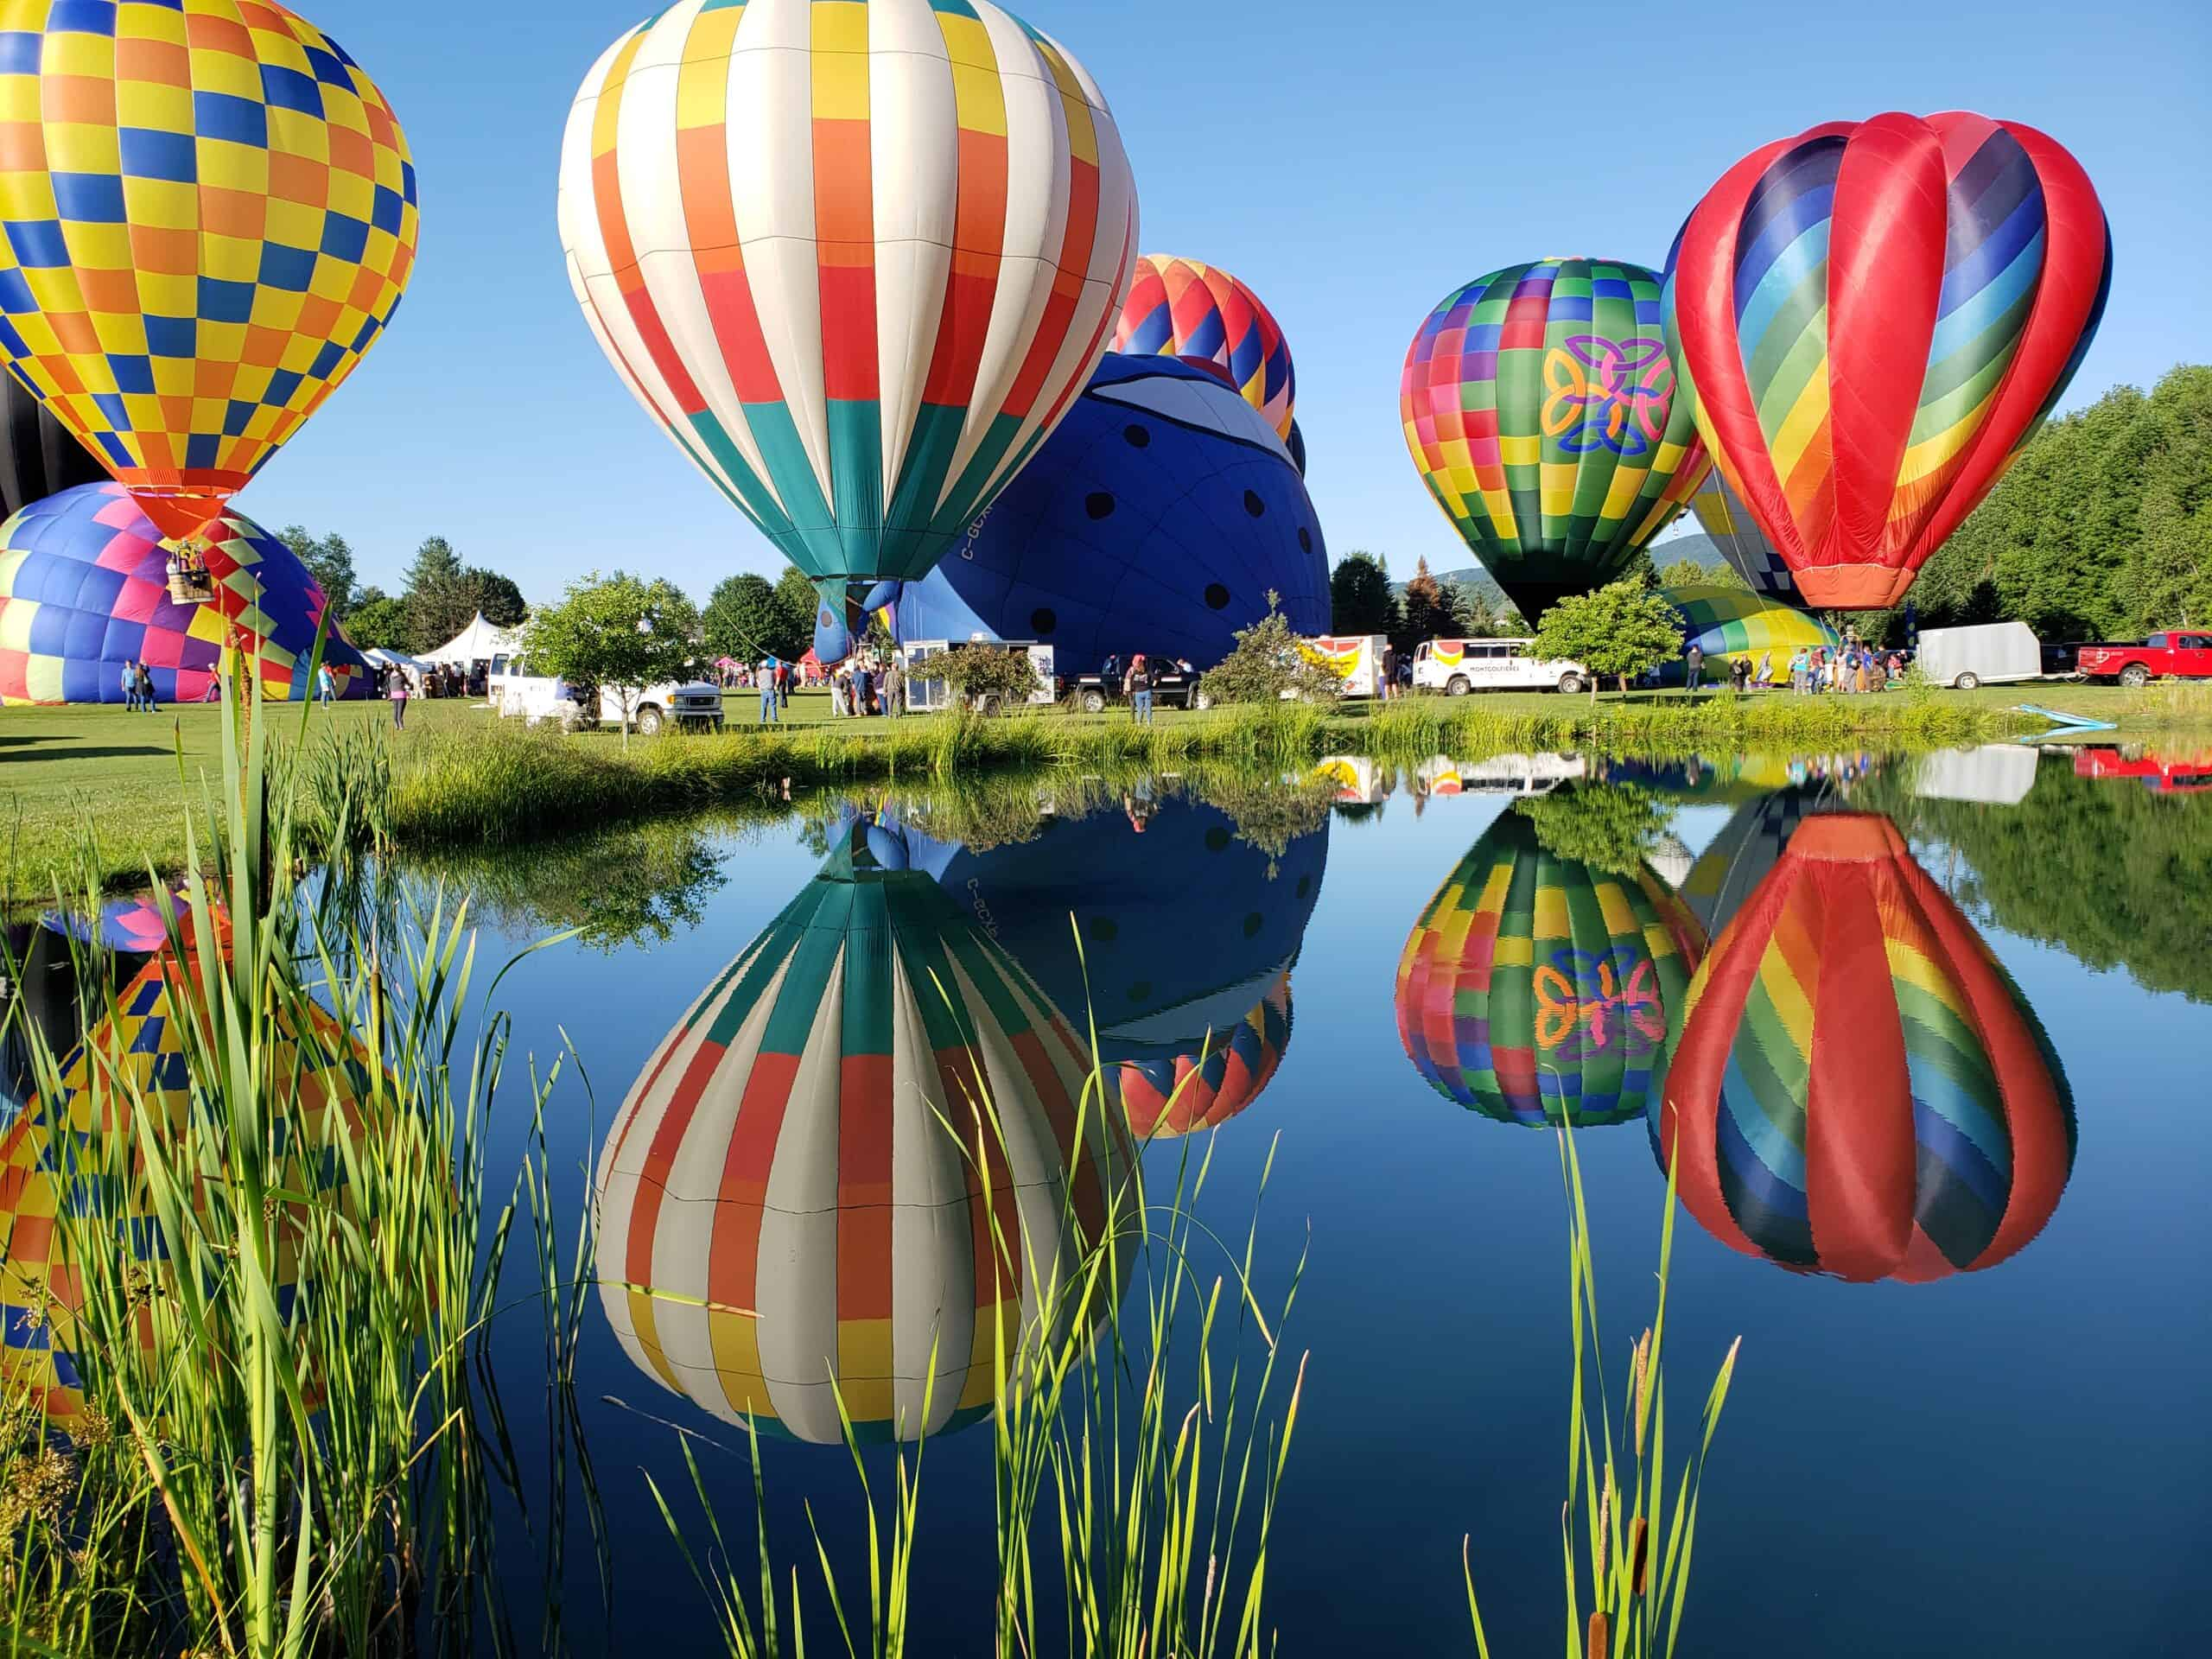 a group of colorful hot air balloons ready to take off, their colors are reflected in a still pond